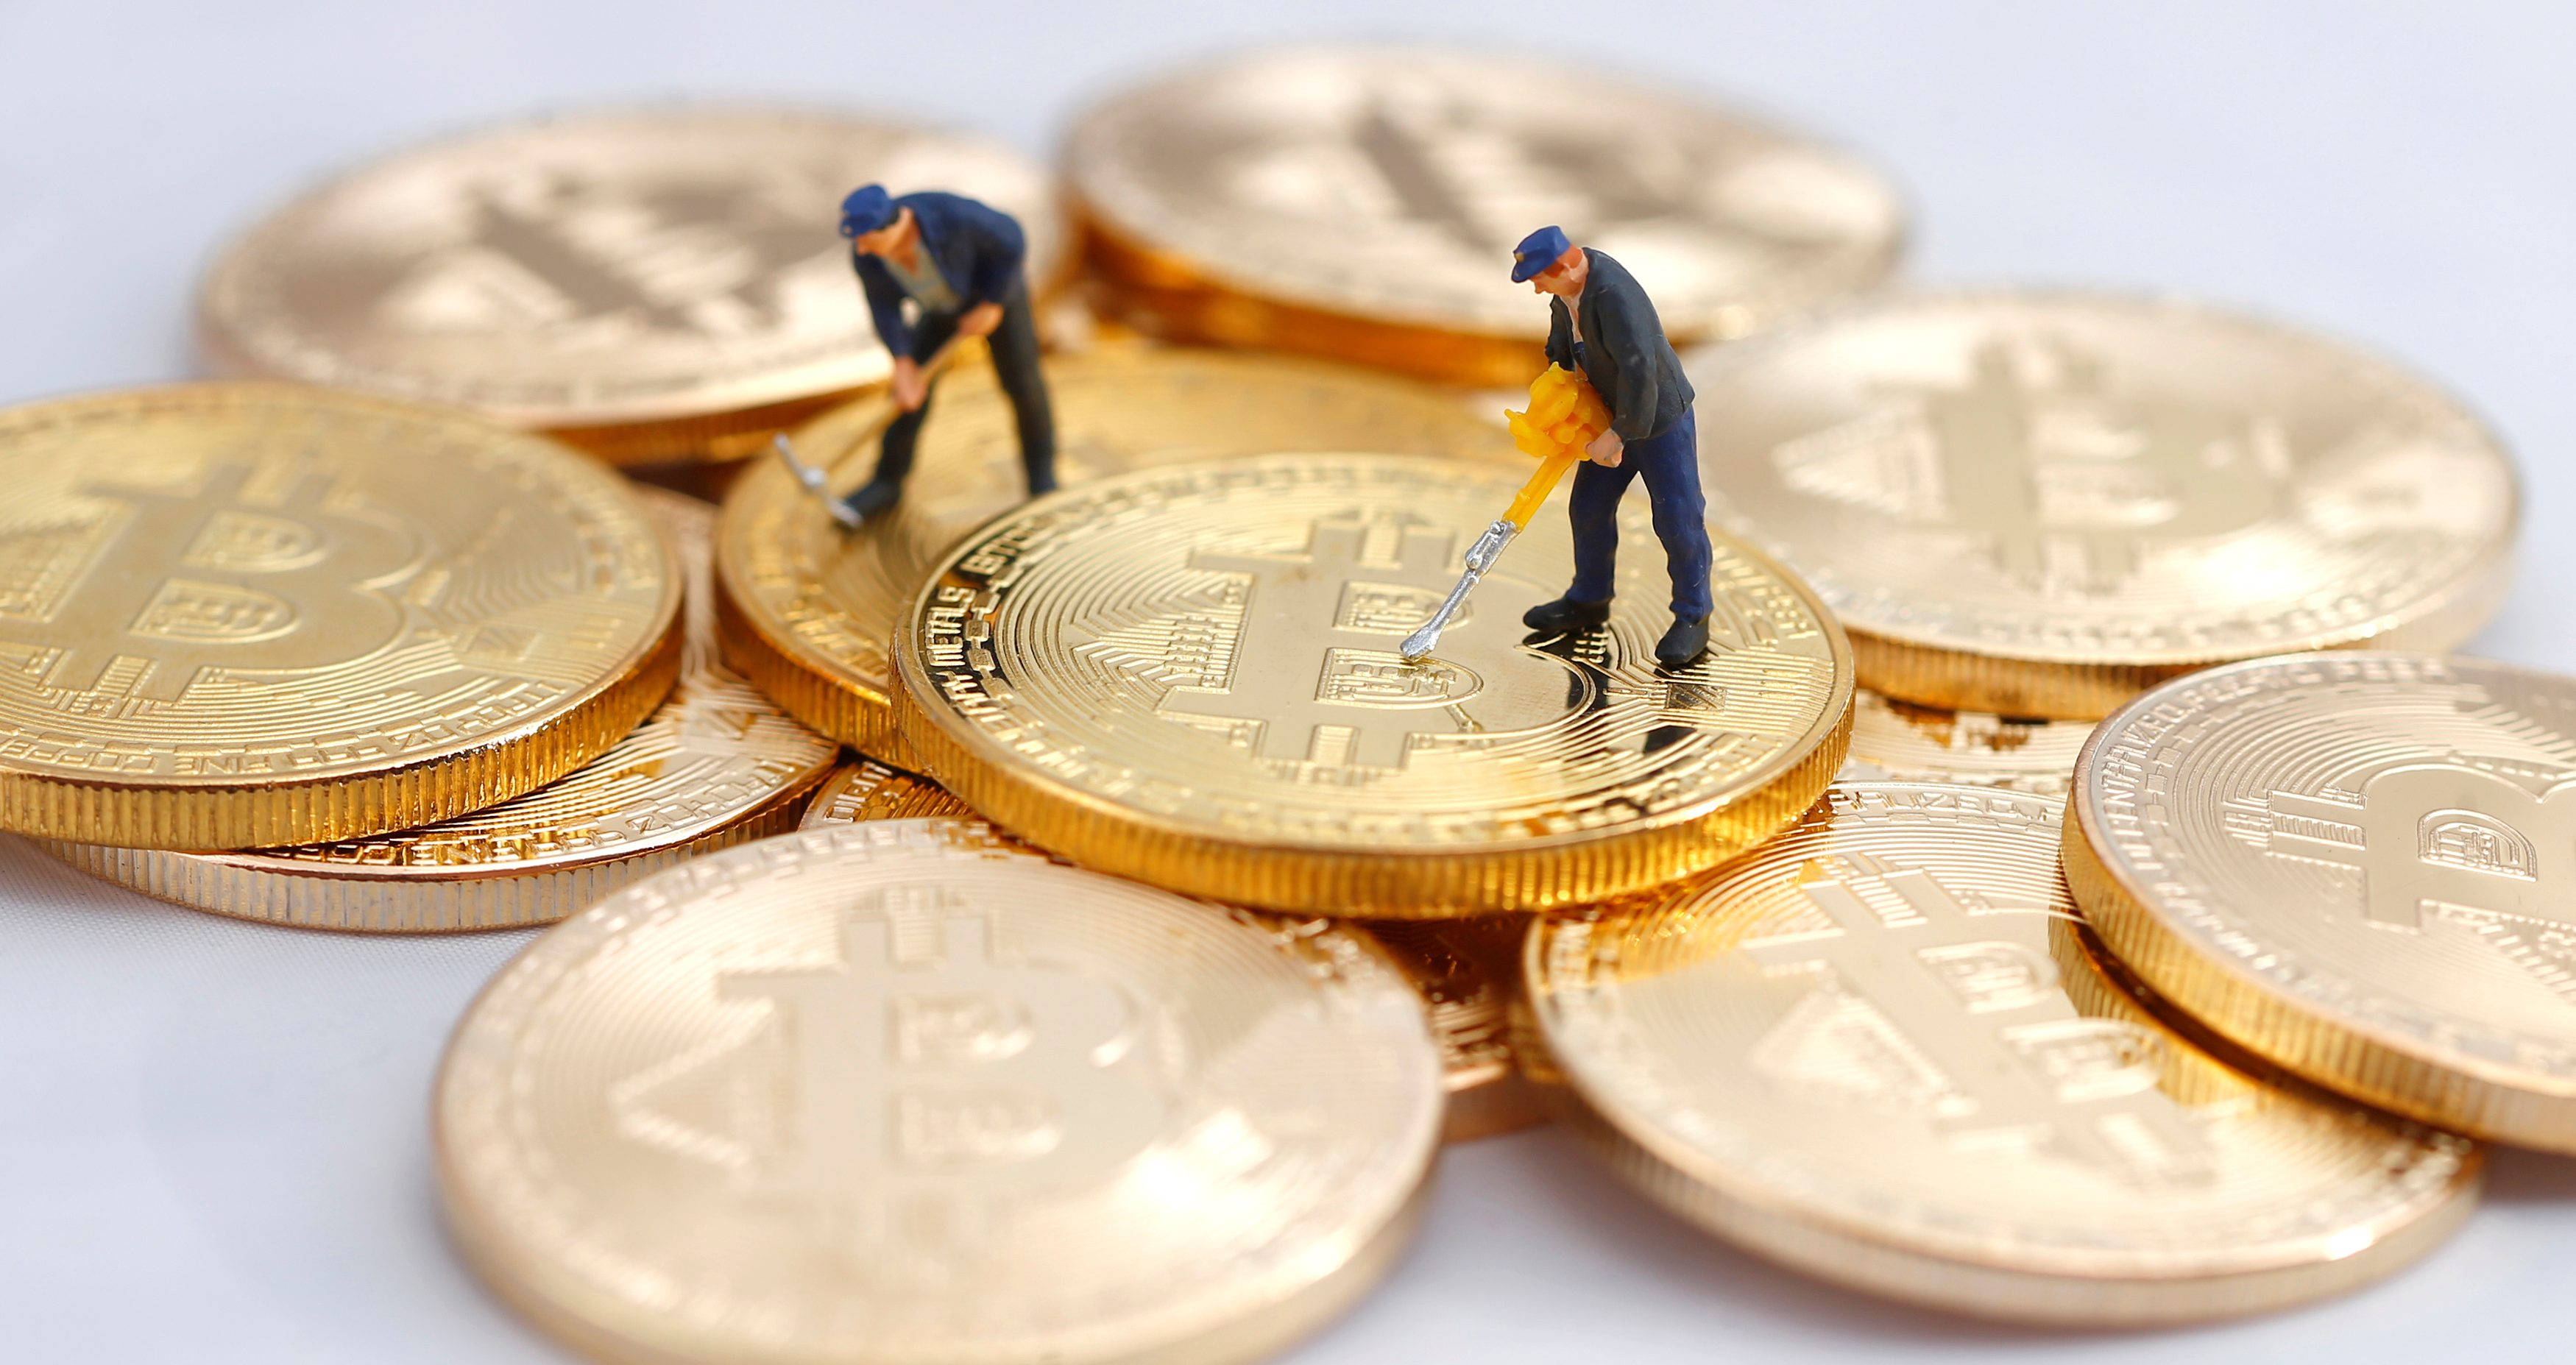 Small toy figures are seen on representations of the Bitcoin virtual currency in this illustration picture